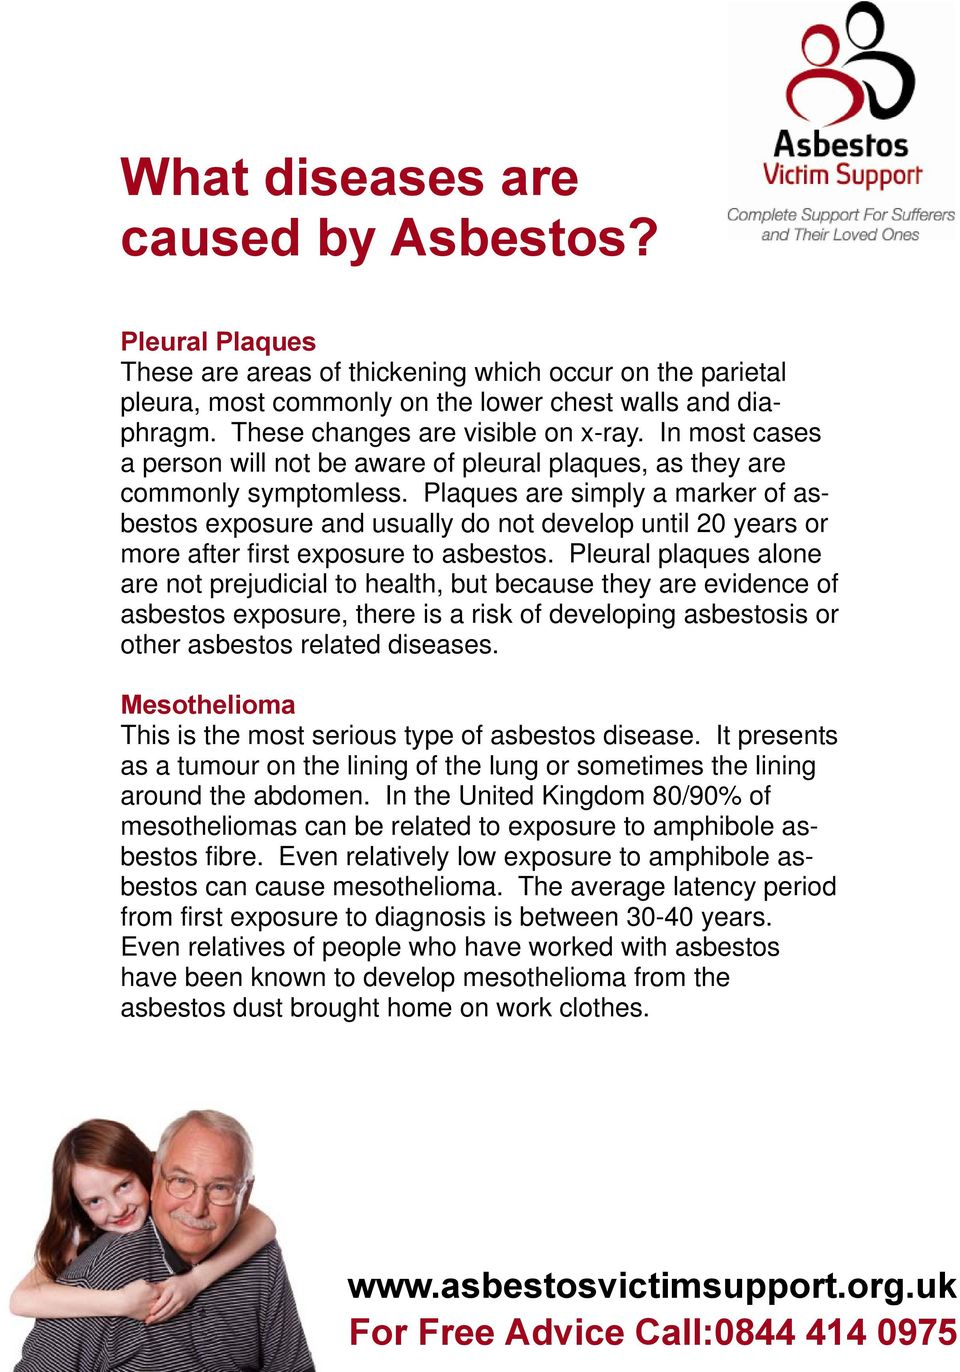 Plaques are simply a marker of asbestos exposure and usually do not develop until 20 years or more after first exposure to asbestos.